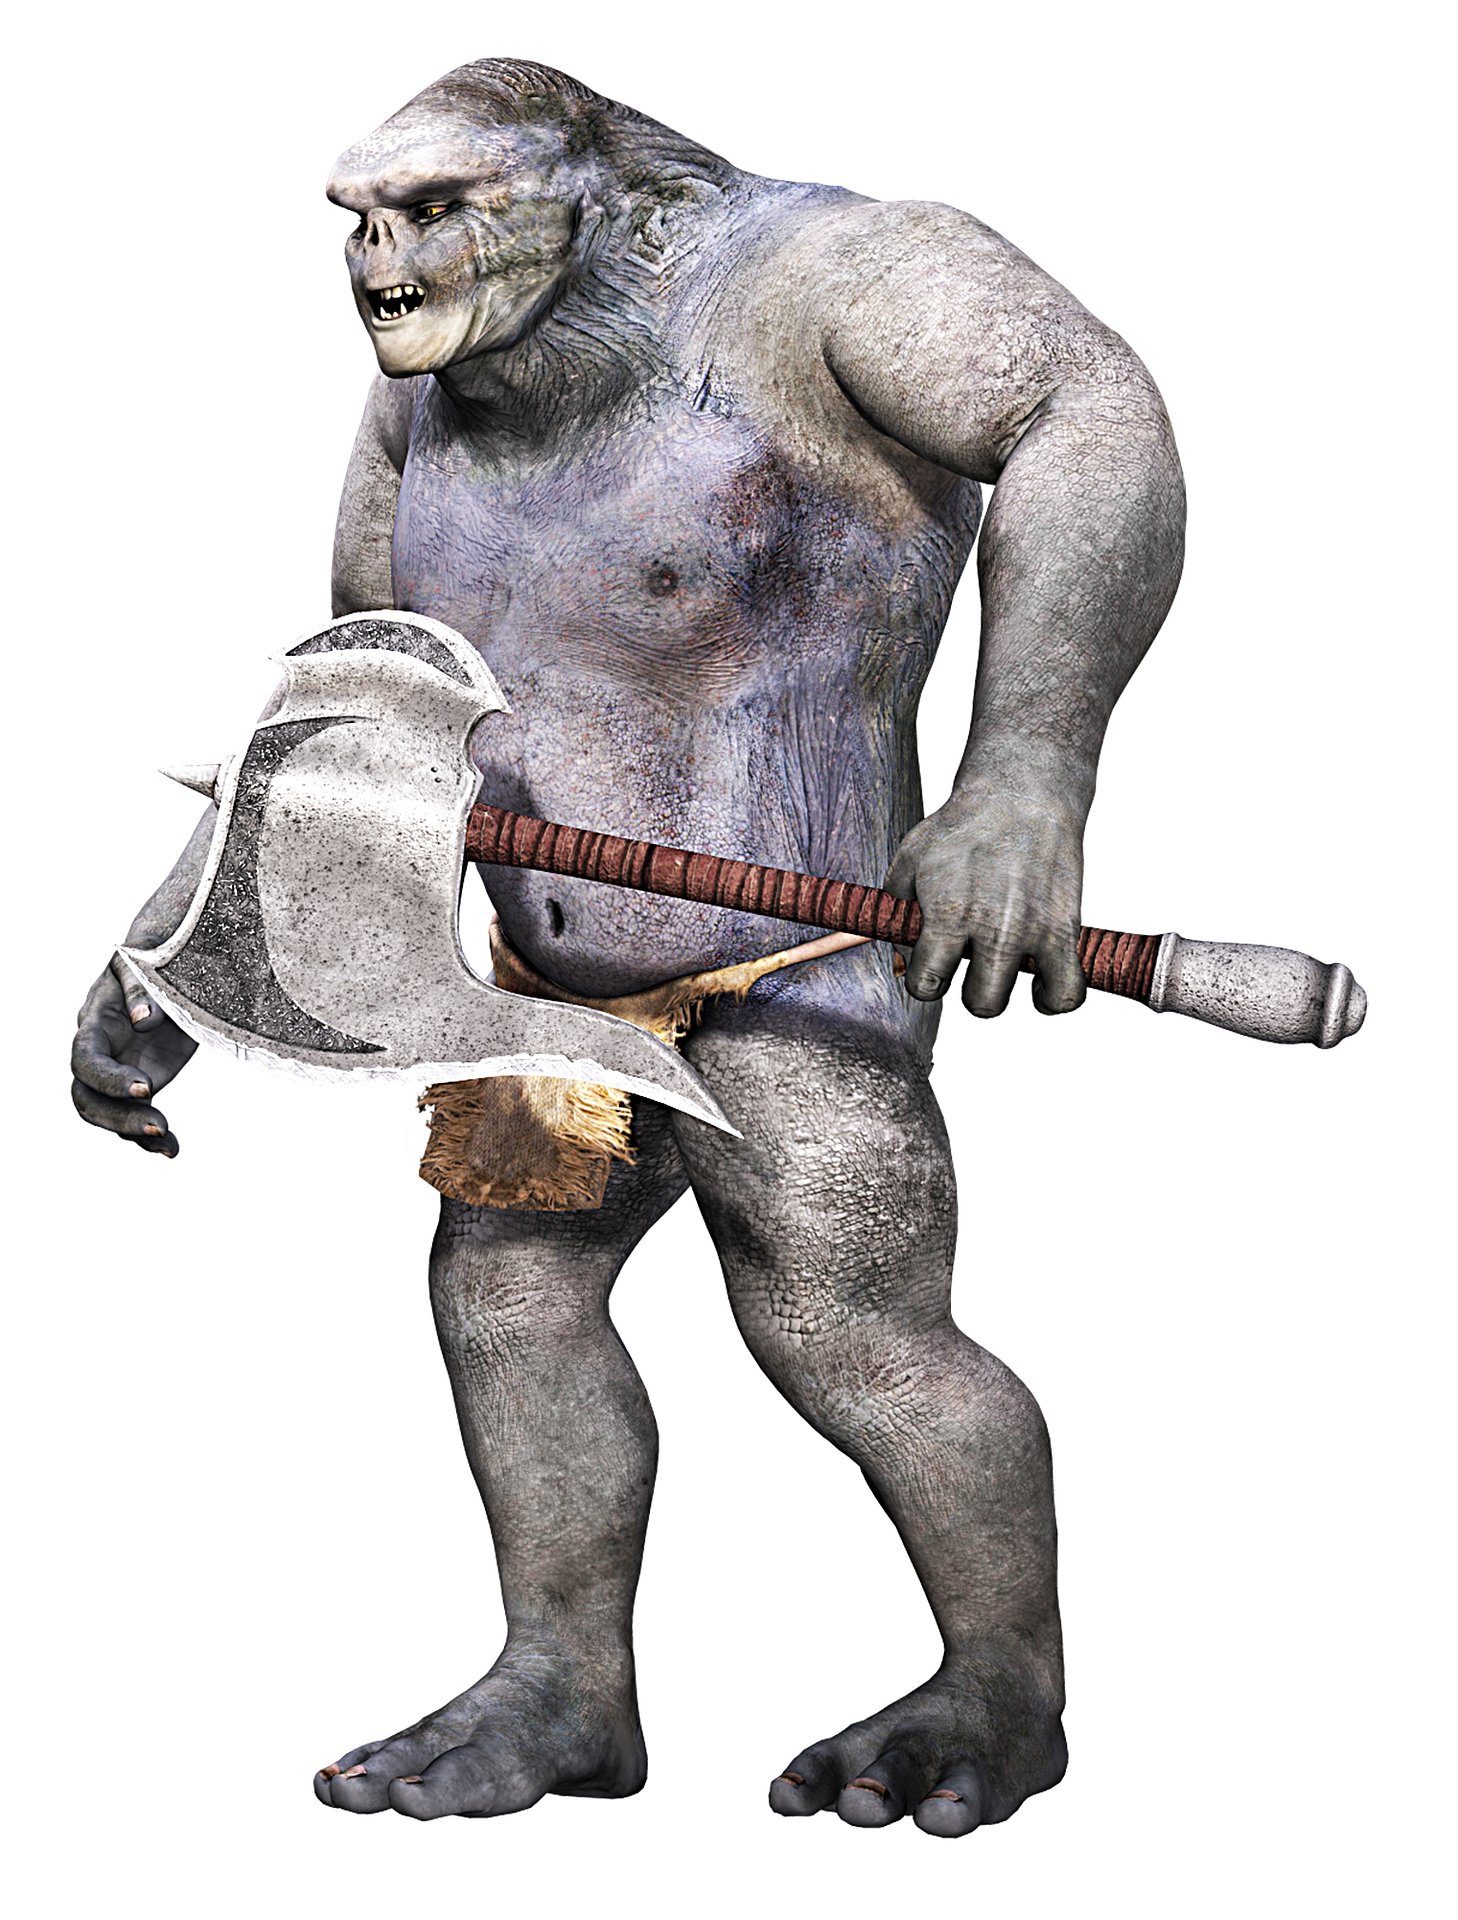 creature-1969074_1920.png